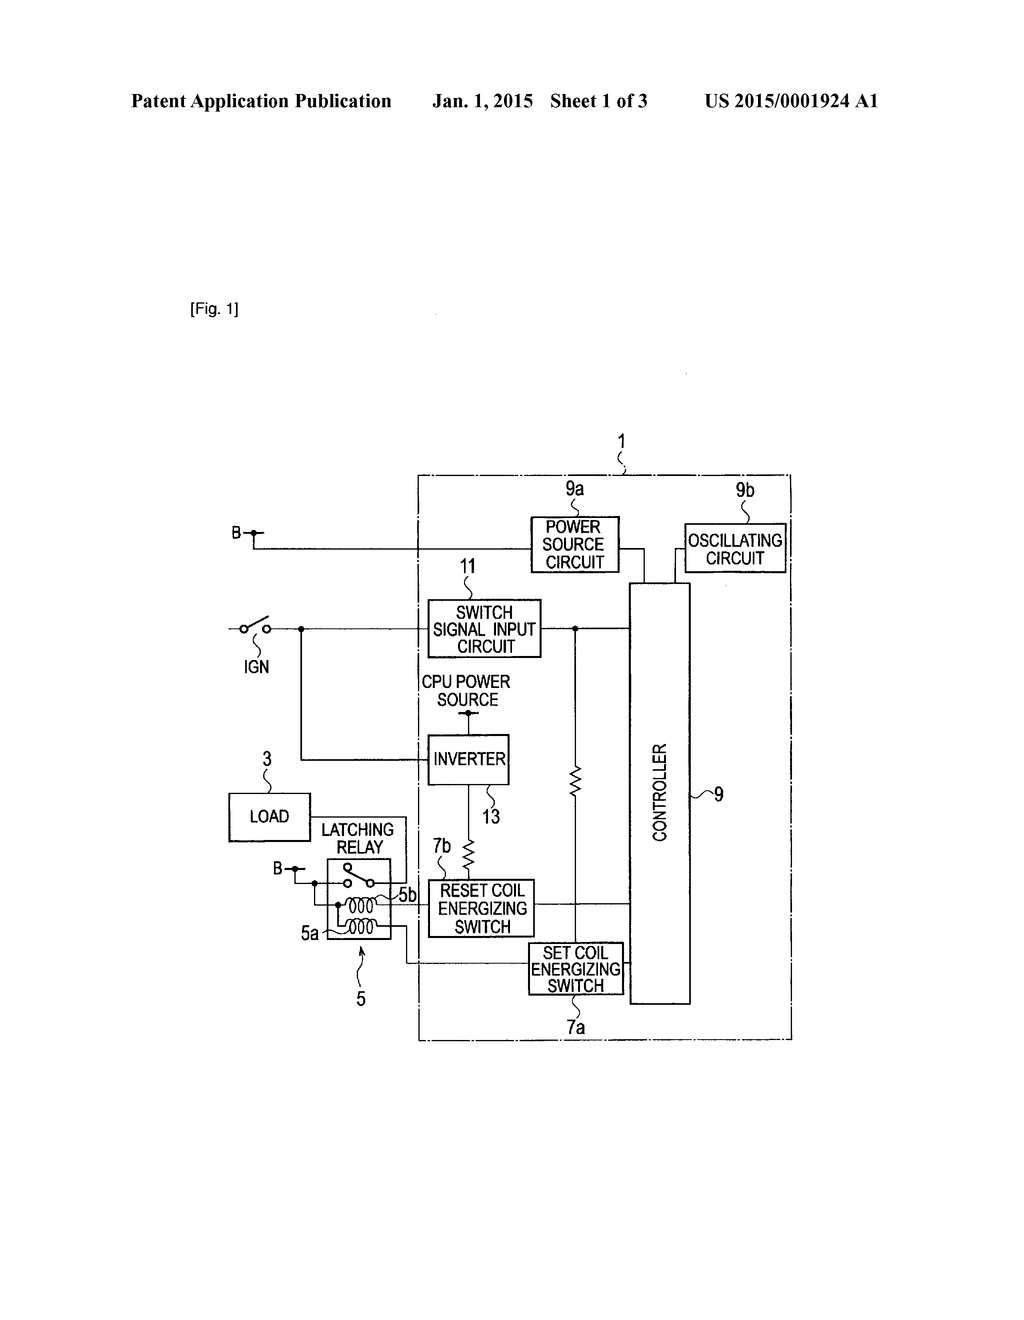 Stupendous With Sweep And Frequency Modulation Circuit Diagram Tradeoficcom Wiring 101 Breceaxxcnl